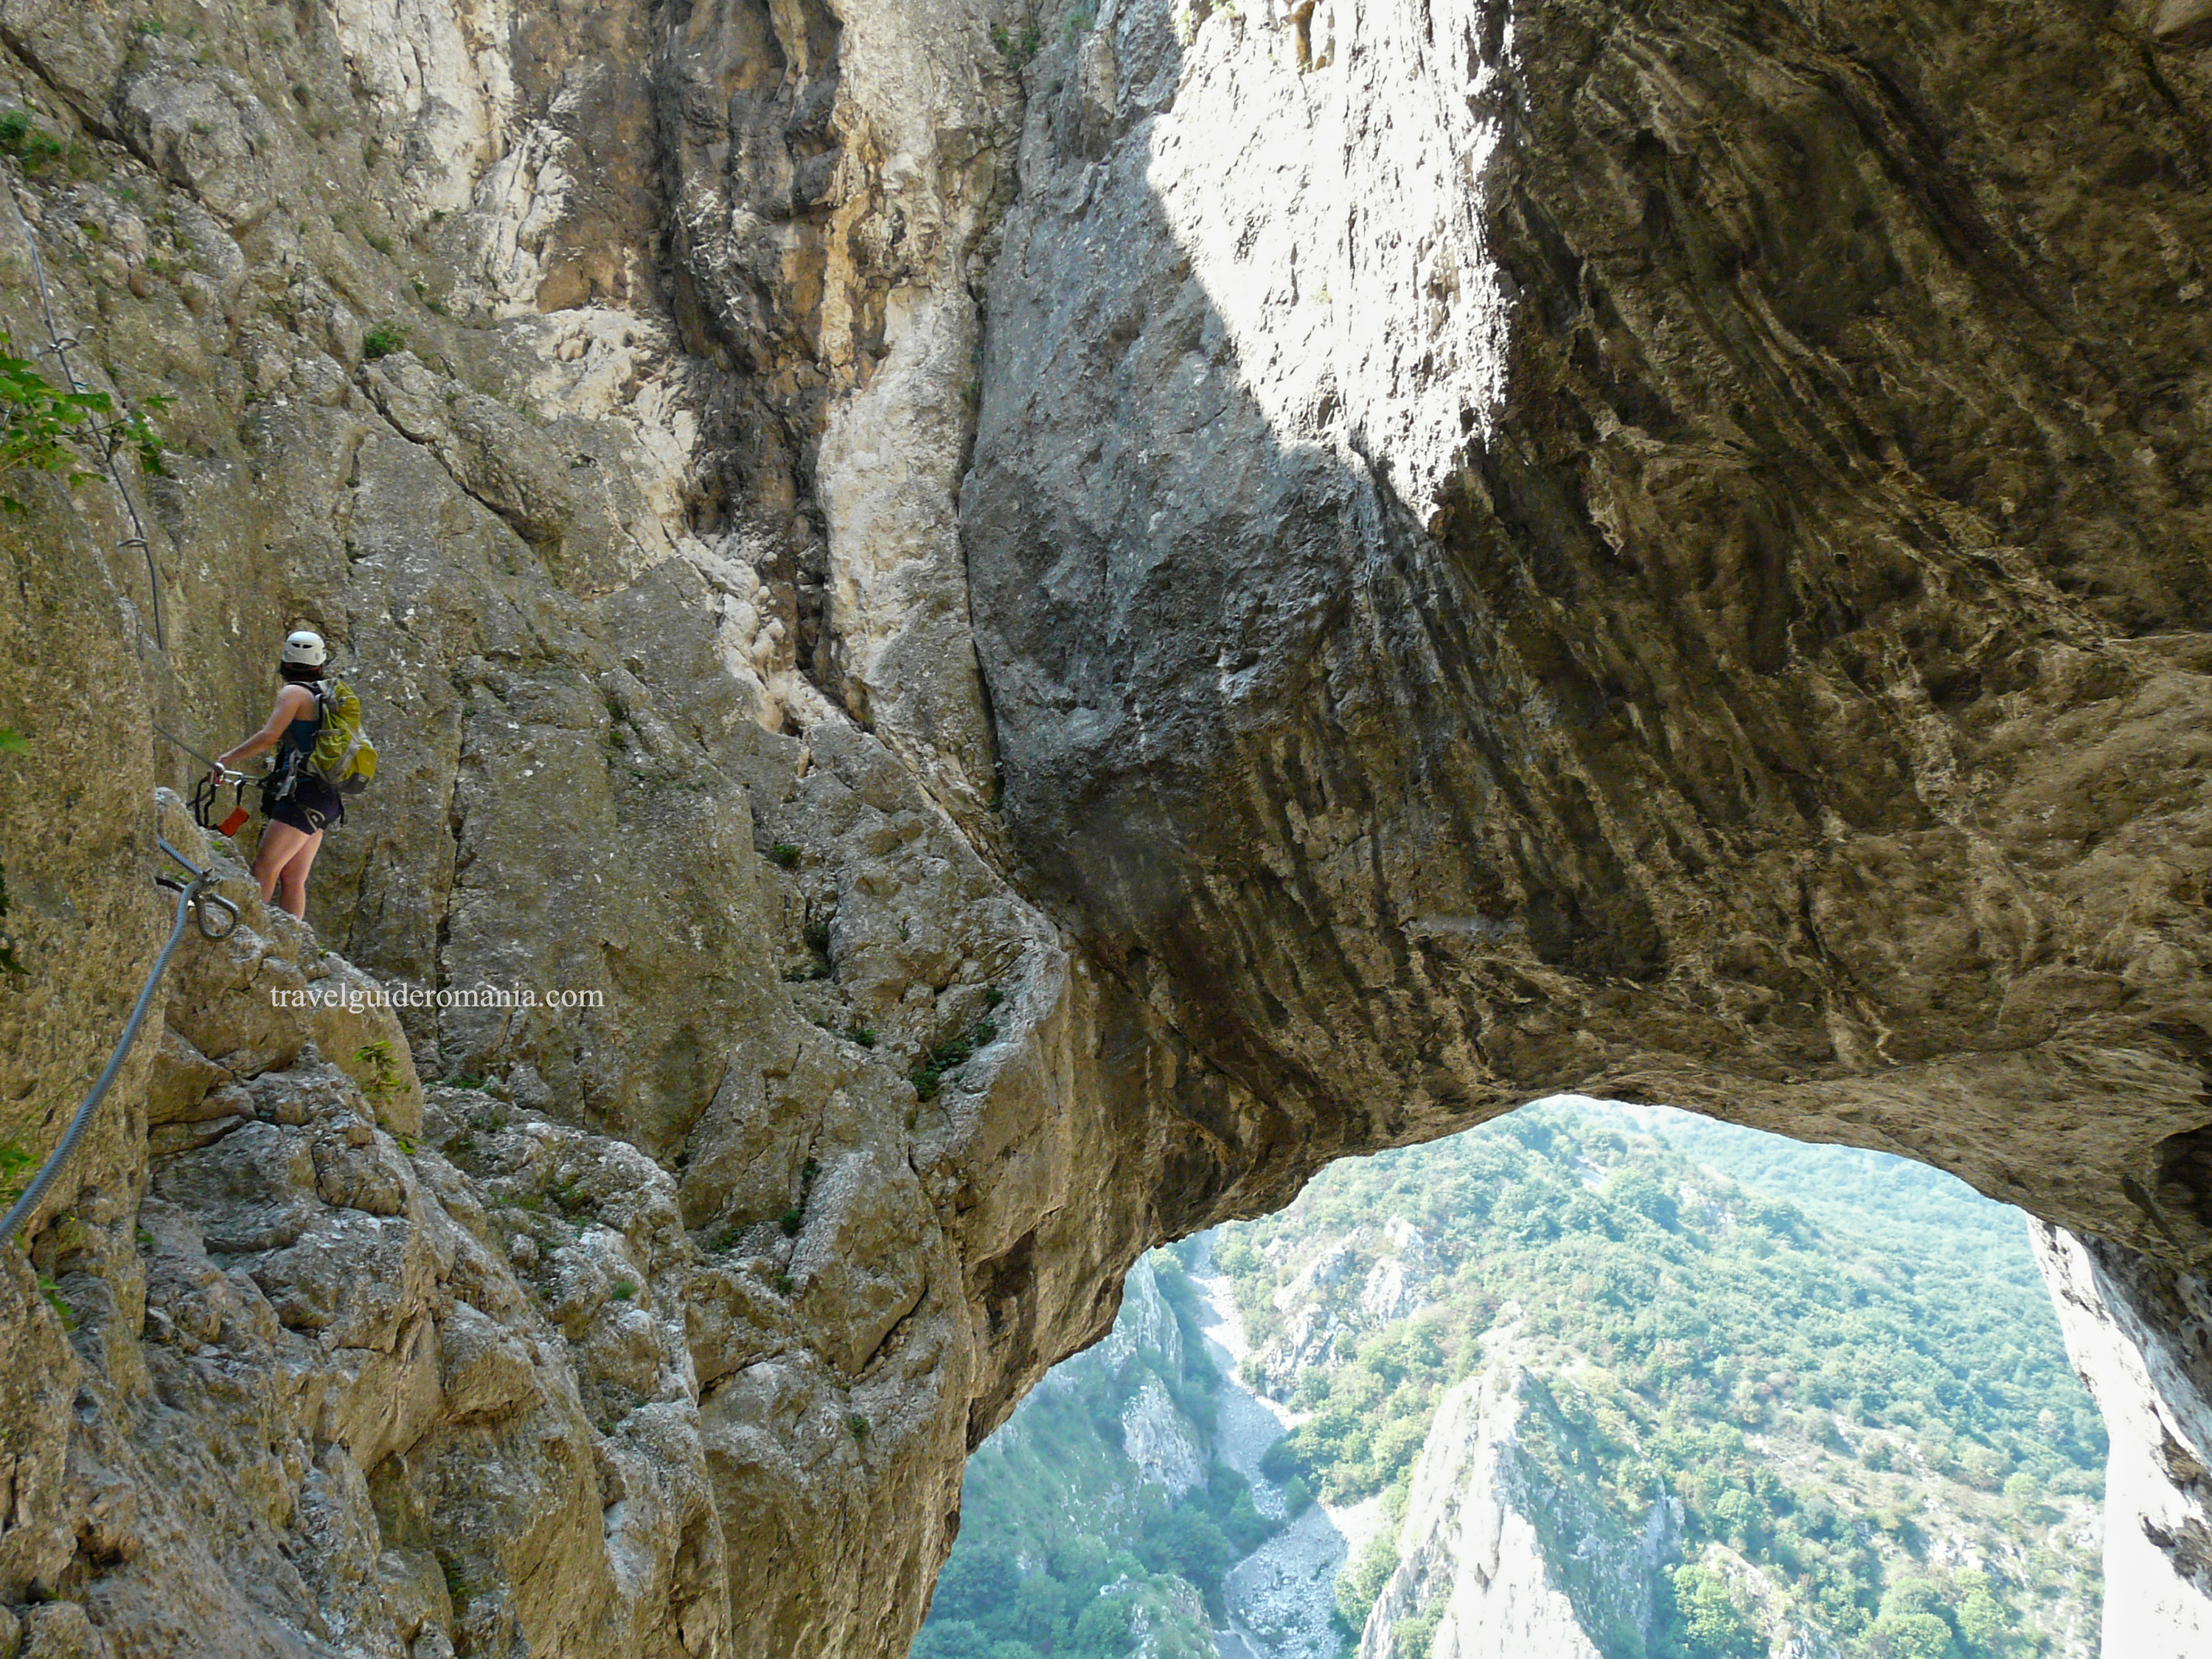 Via ferrata in Turda Gorge